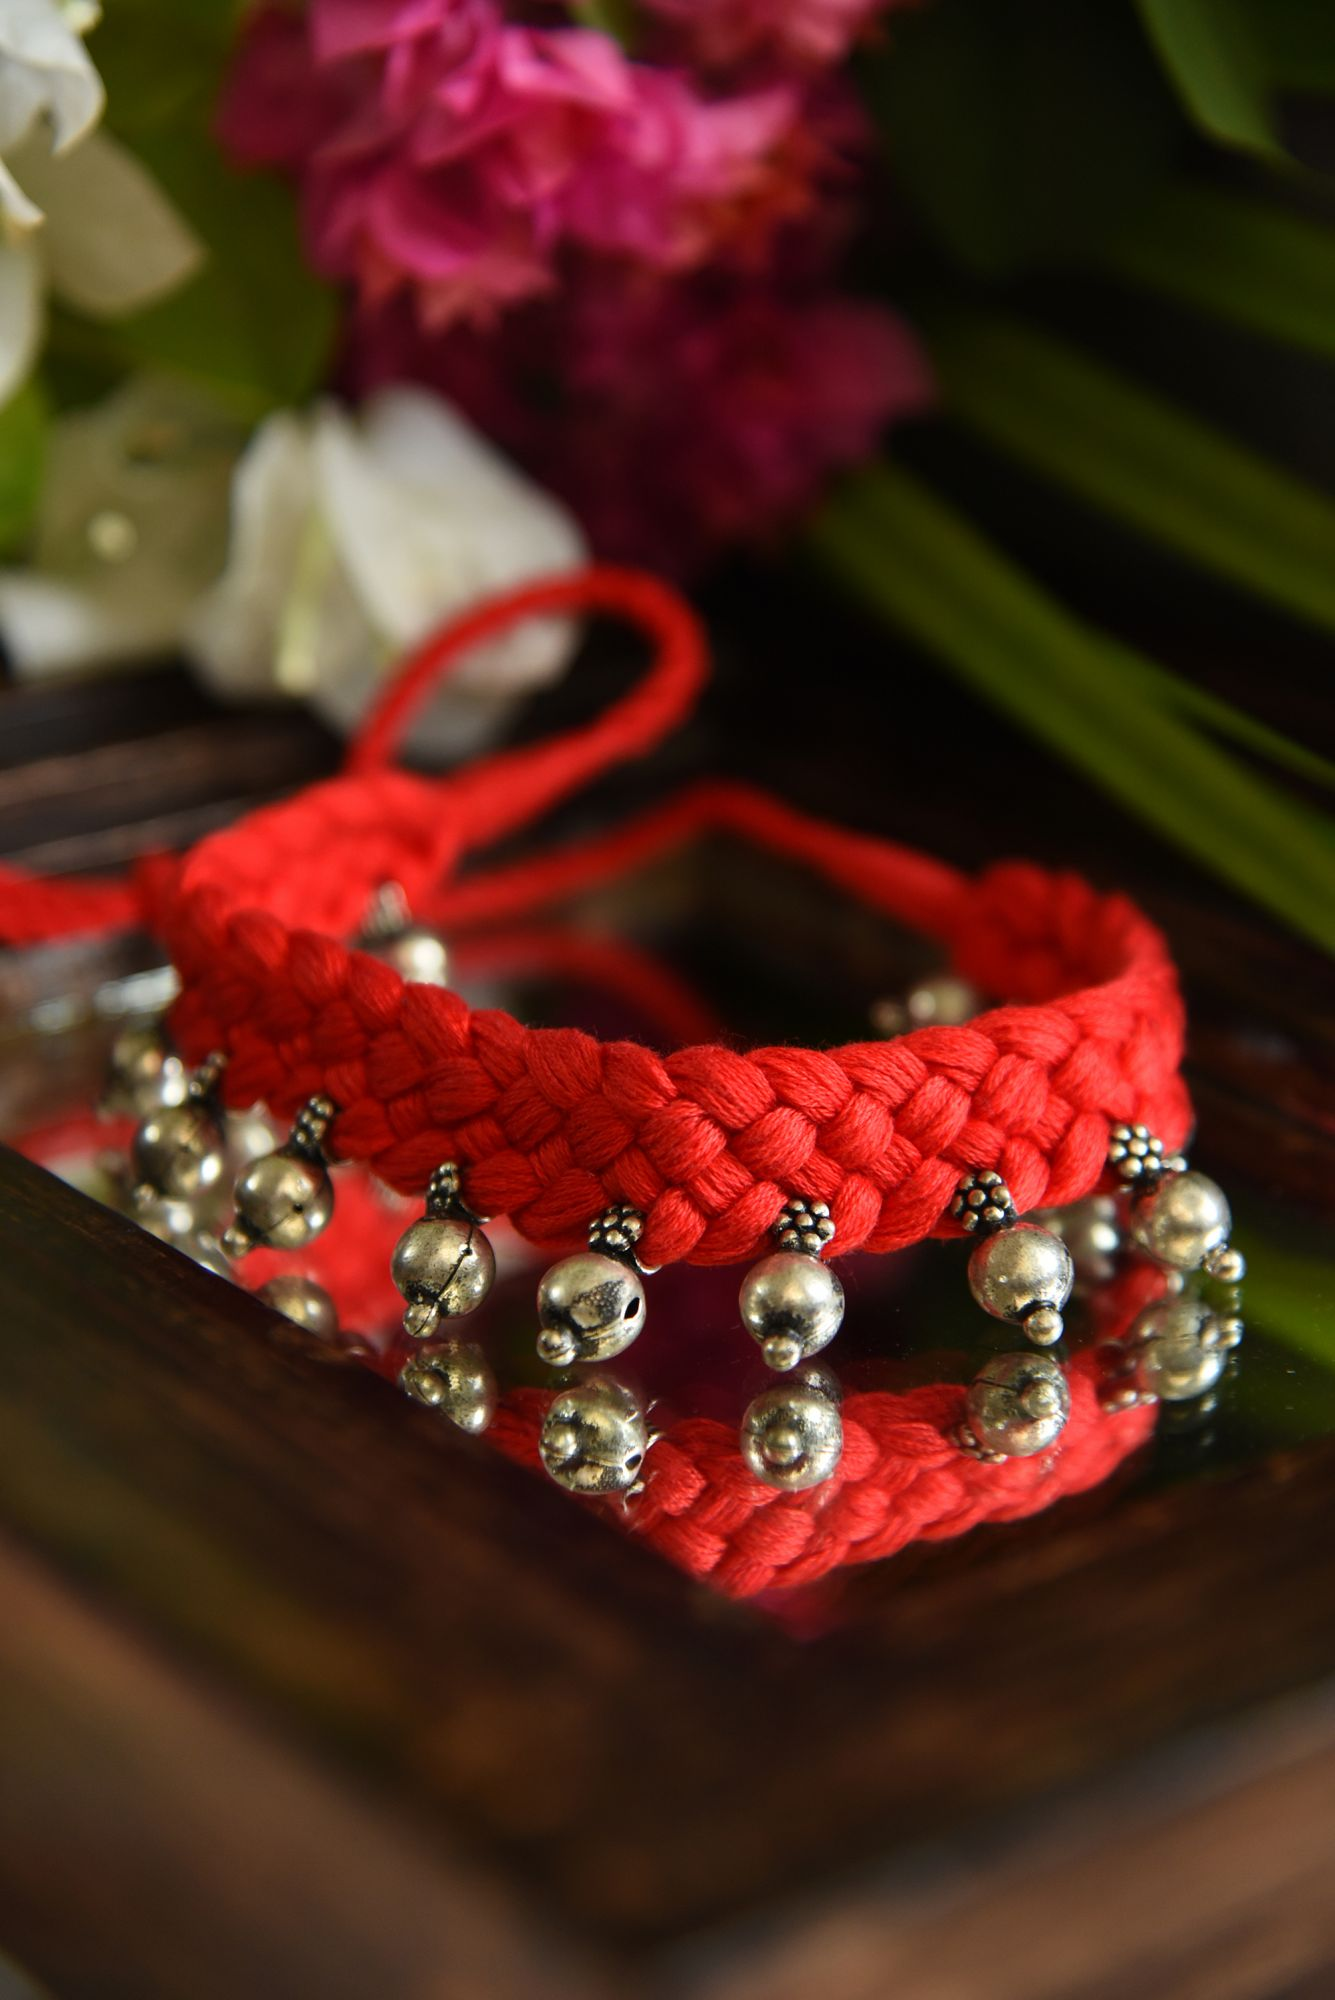 BEADS IN RED